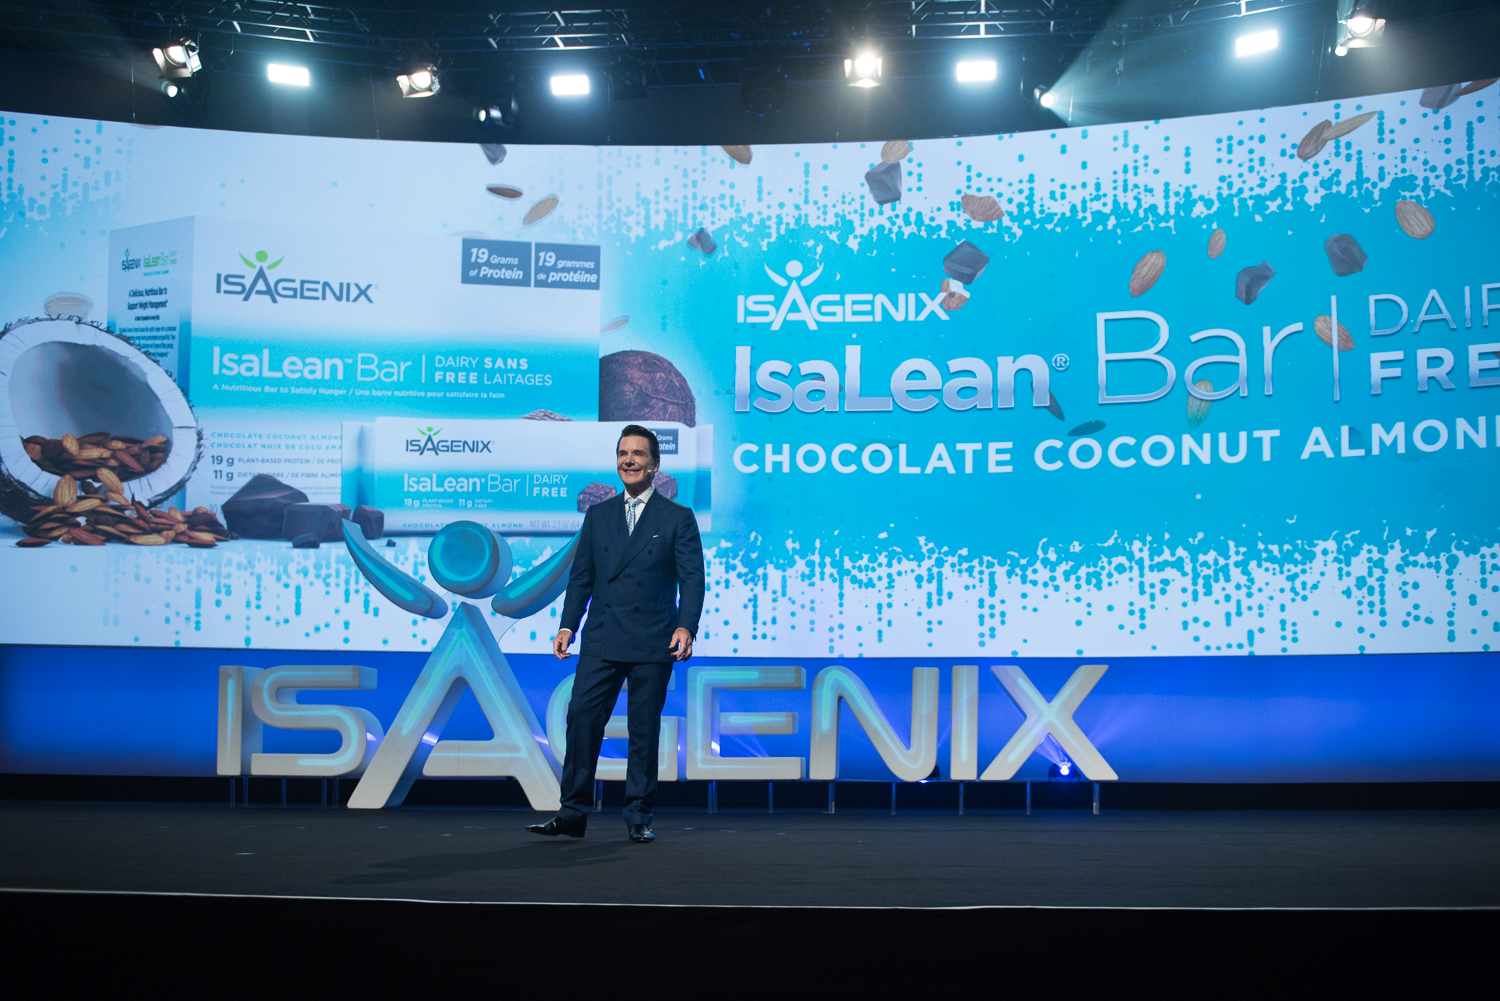 Jim Coover, Co-Founder and Chief Executive Officer, Launches New Whey Thins White Cheddar Flavor from Stage at NYKO 2017